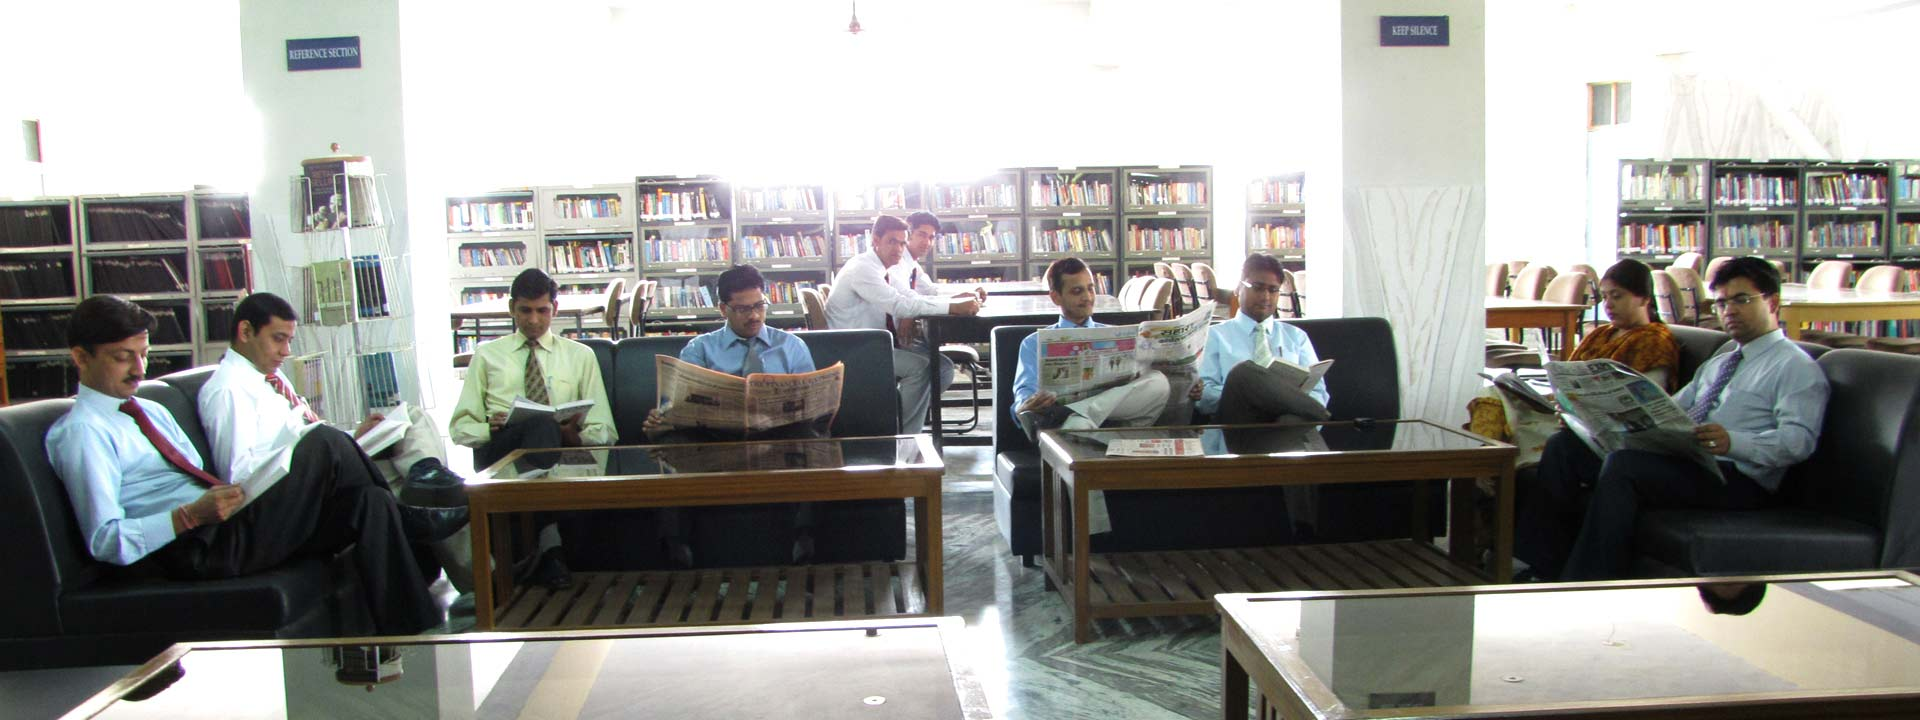 Over 80,000 books, periodicals, international journals and other research material